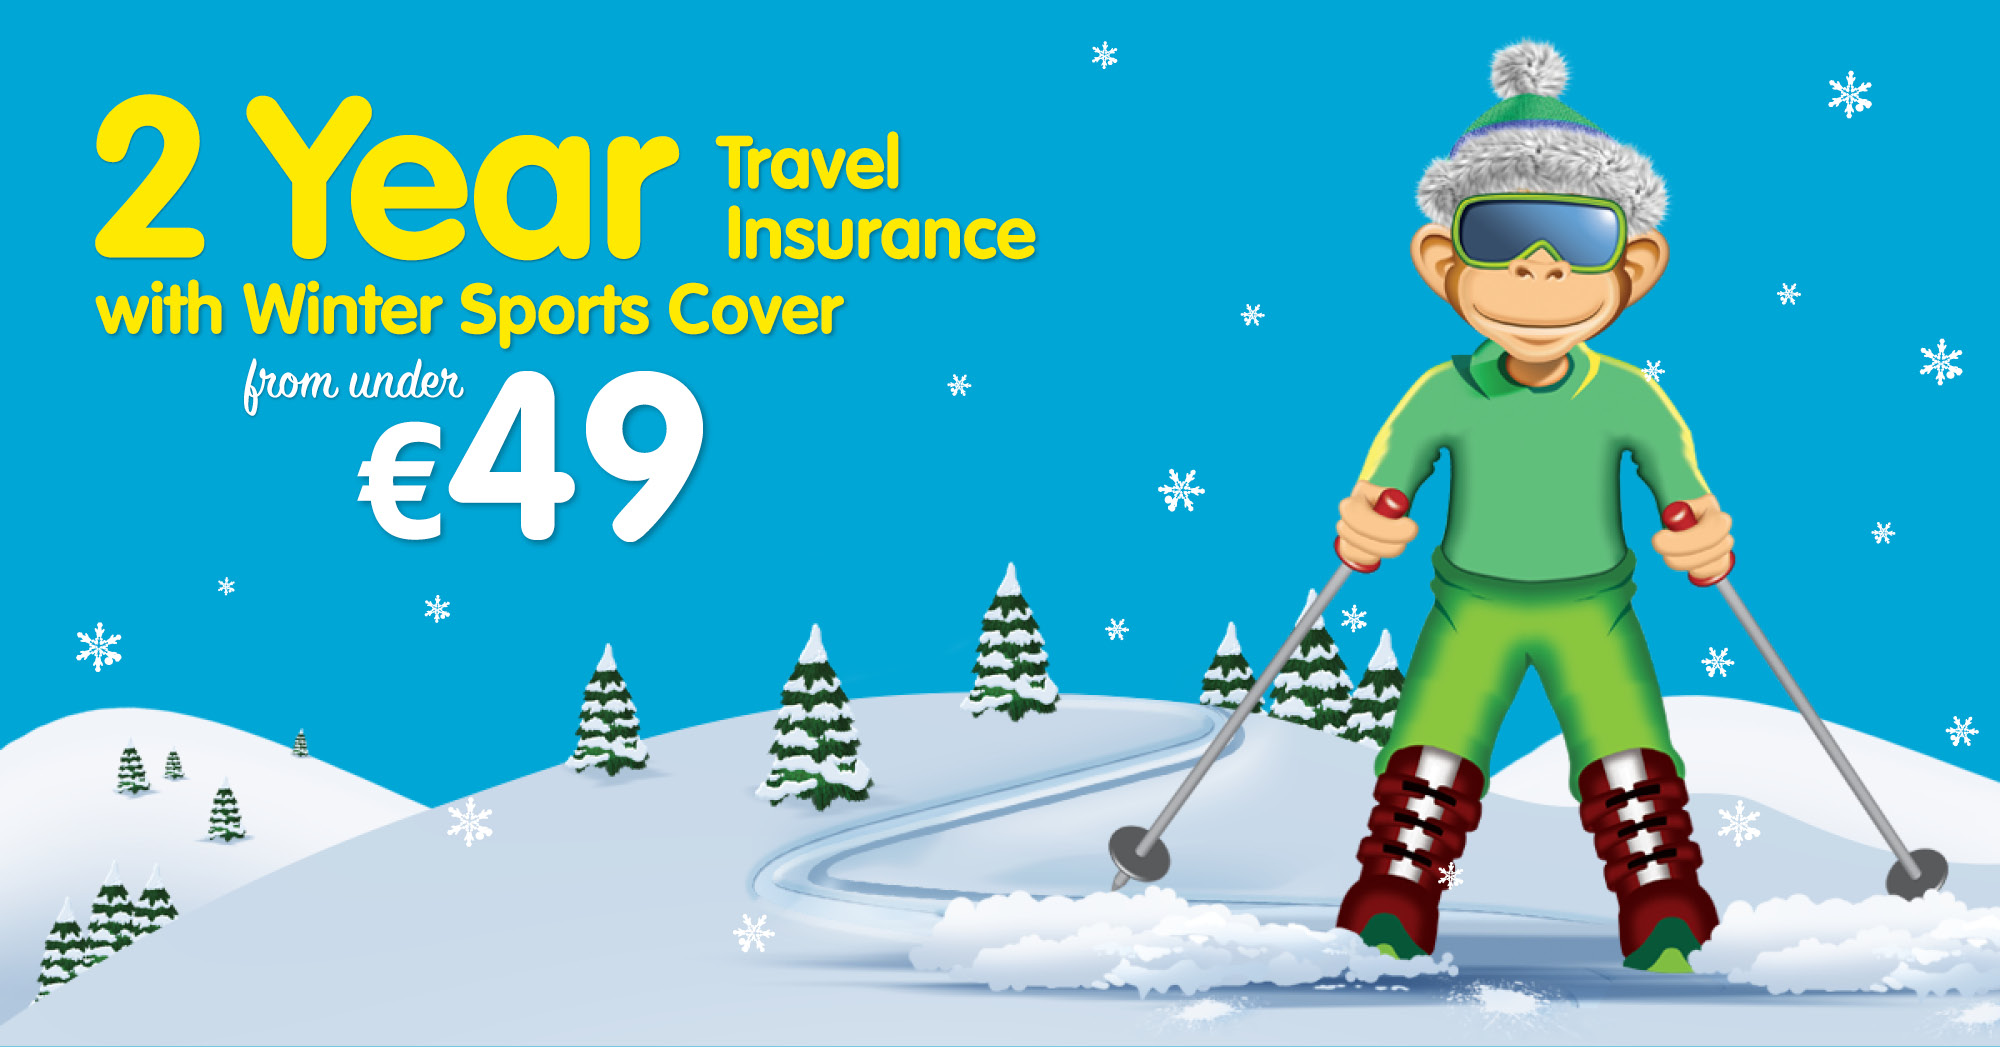 2 Year Travel Insurance with Winter Sports Cover